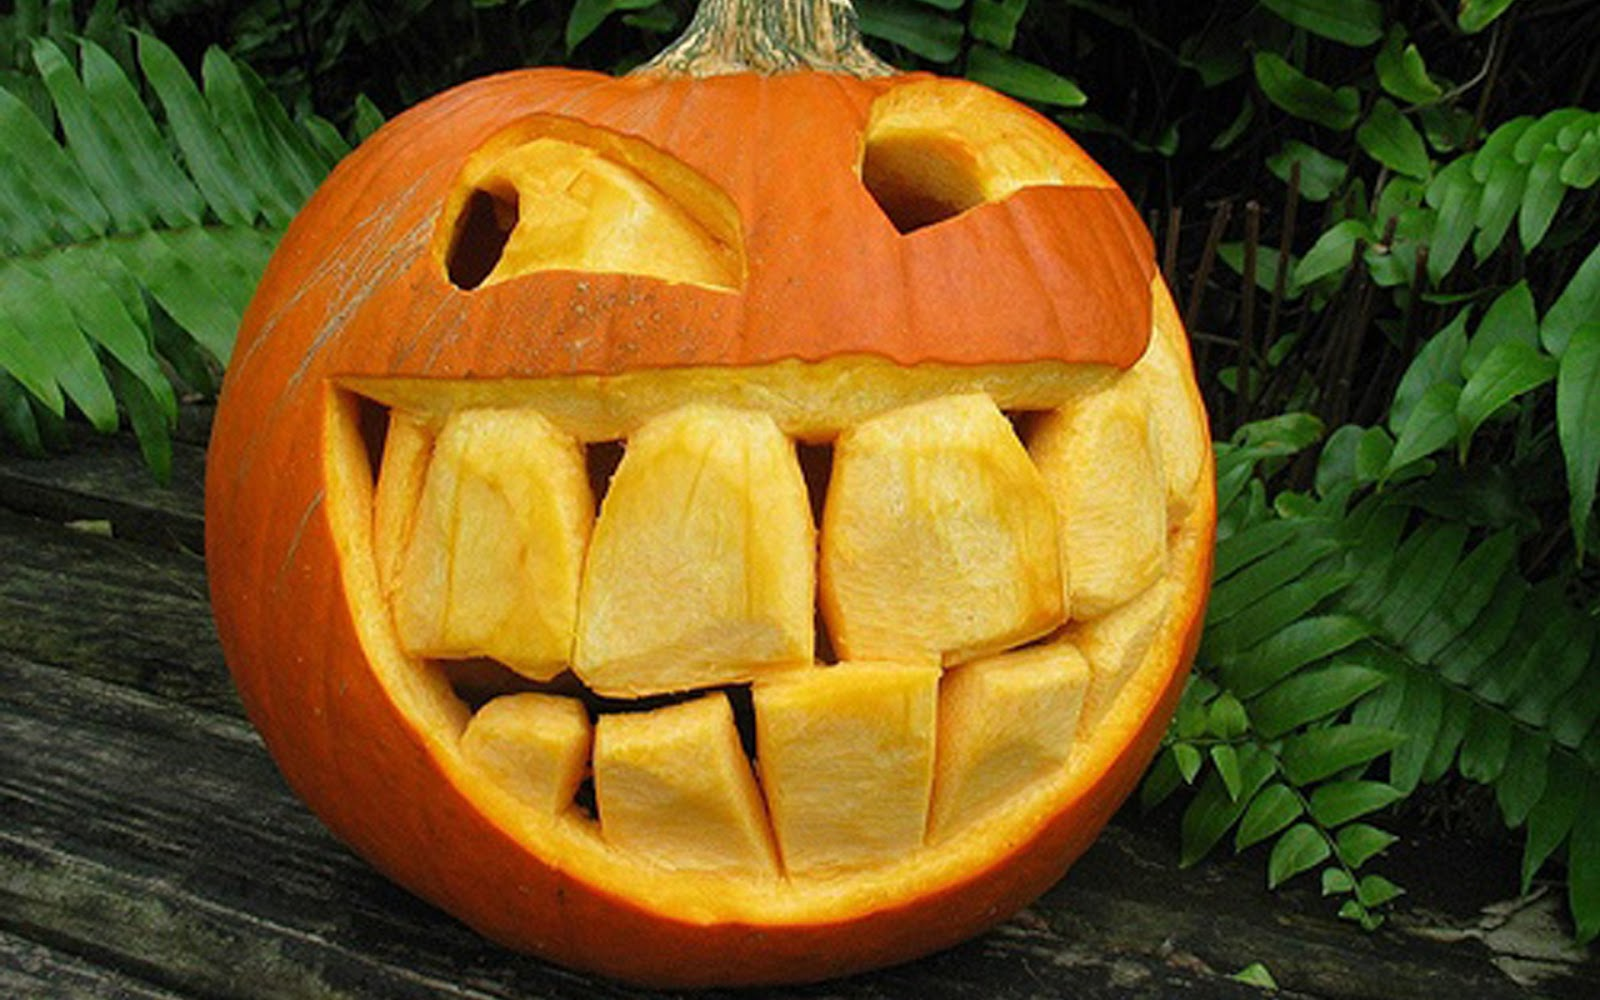 Pumpkin carving ideas for halloween 2017 more great Halloween pumpkin carving ideas